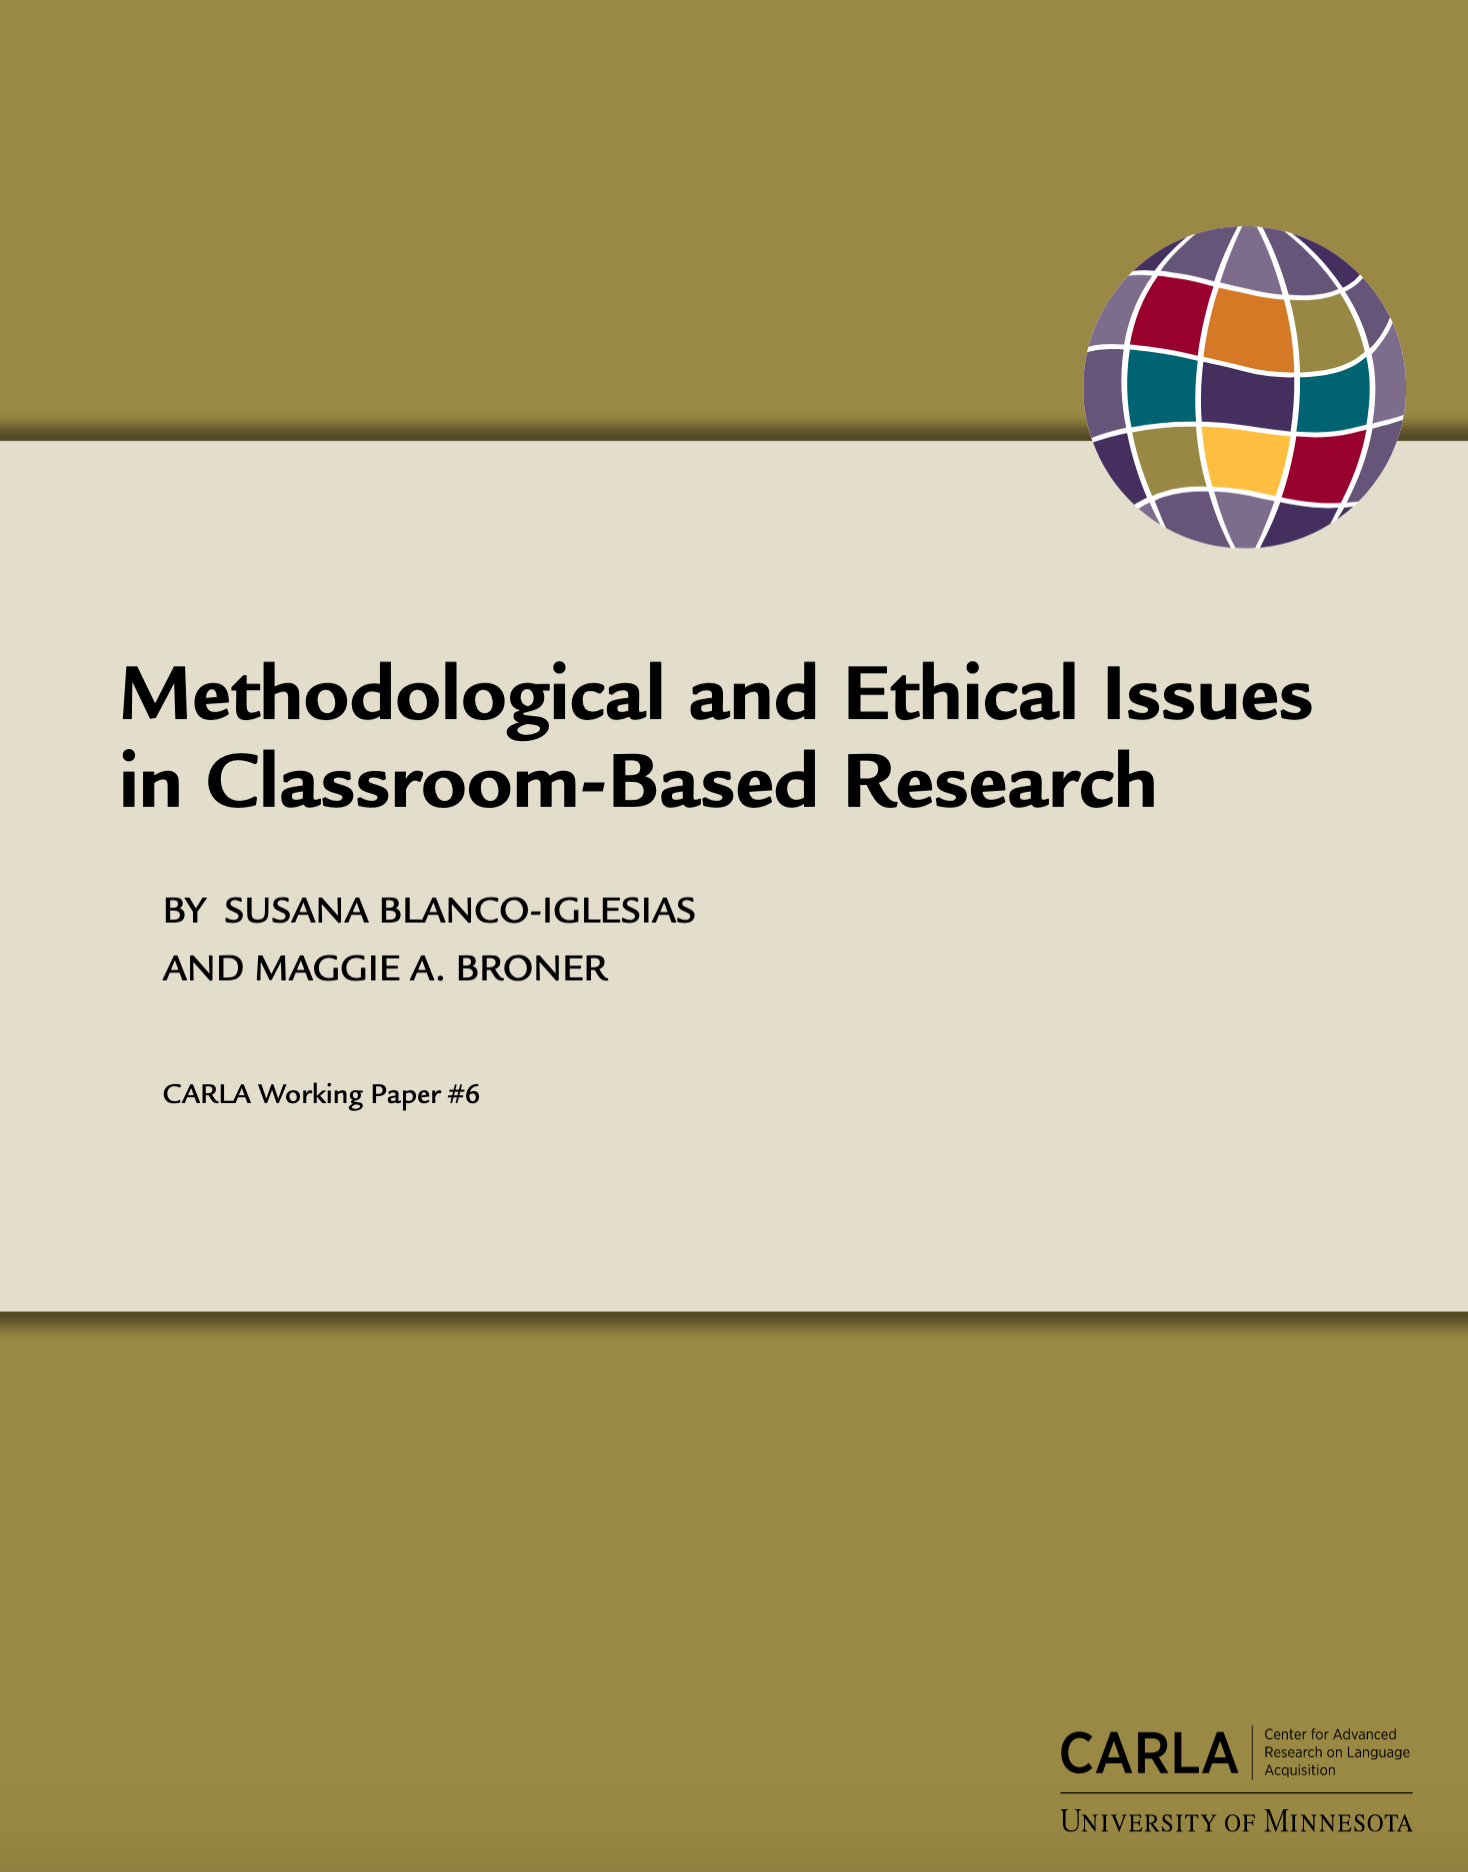 Methodological and Ethical Issues in Classroom-Based Research